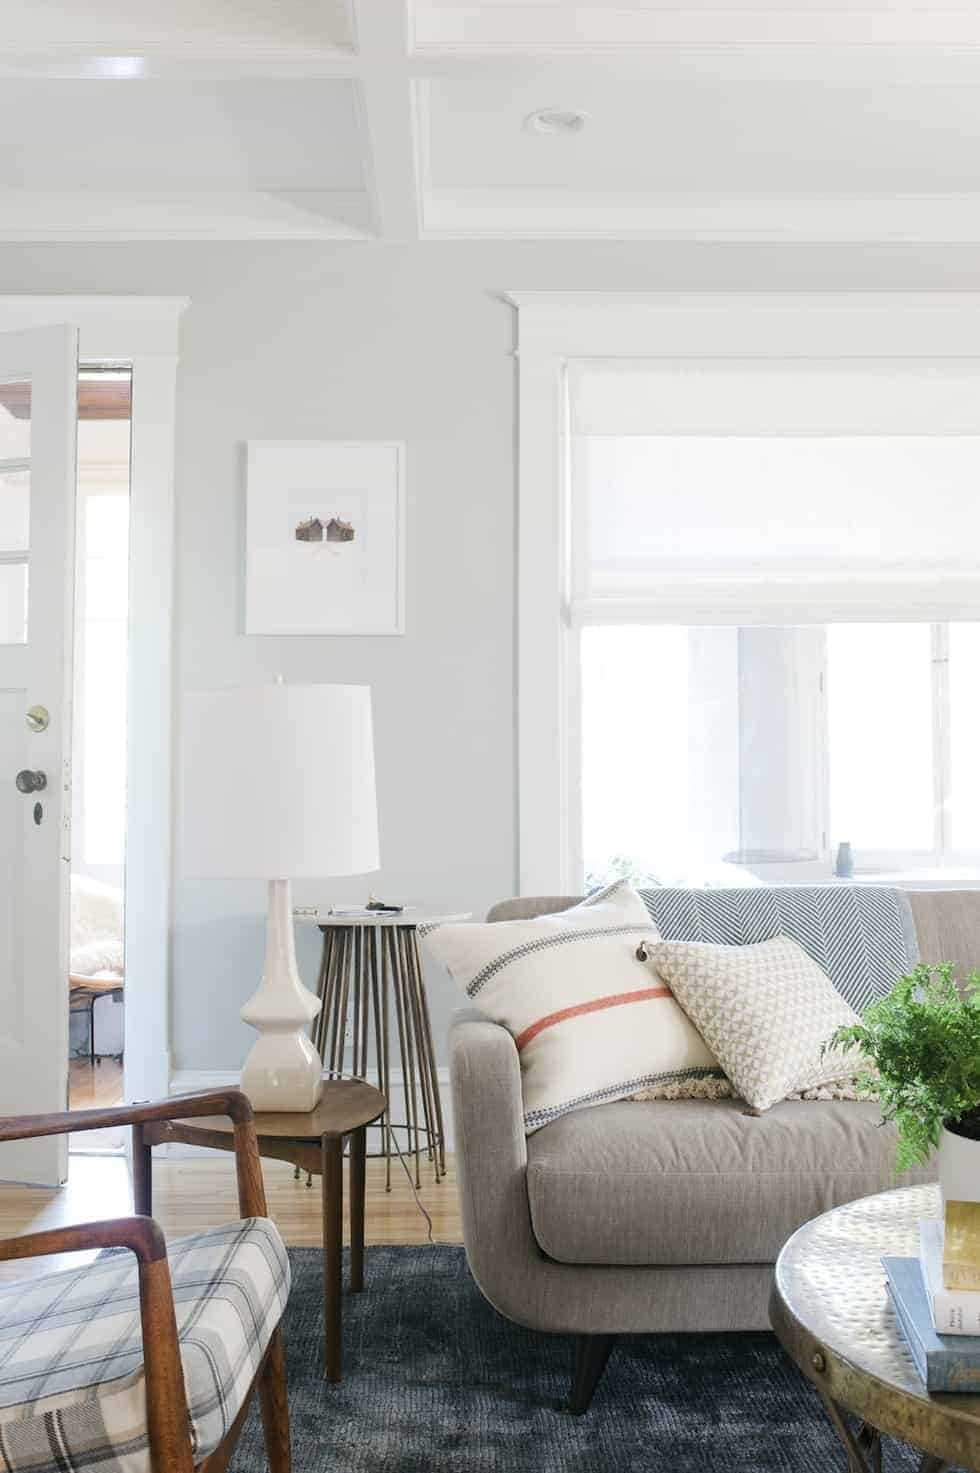 Sherwin Williams Pure White Trim Paint is a great choice for trim paint as it has minimal undertones and works with any wall color.